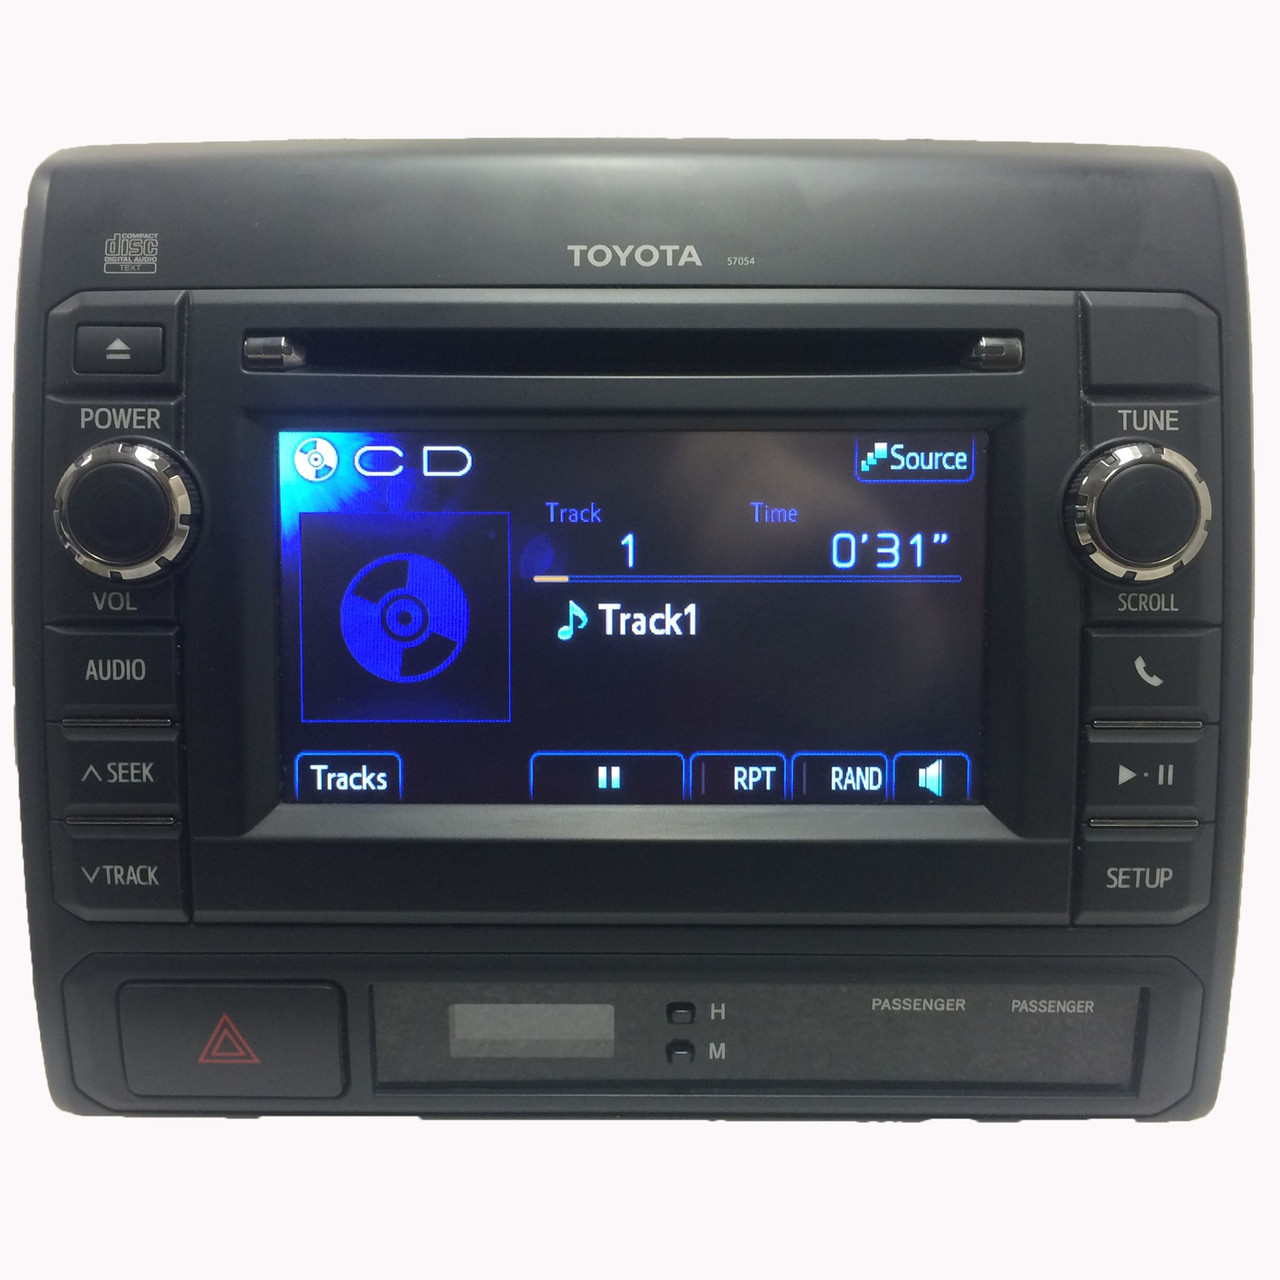 2013 toyota tacoma installation parts harness wires kits bluetooth iphone tools wire diagrams stereo [ 1280 x 1280 Pixel ]